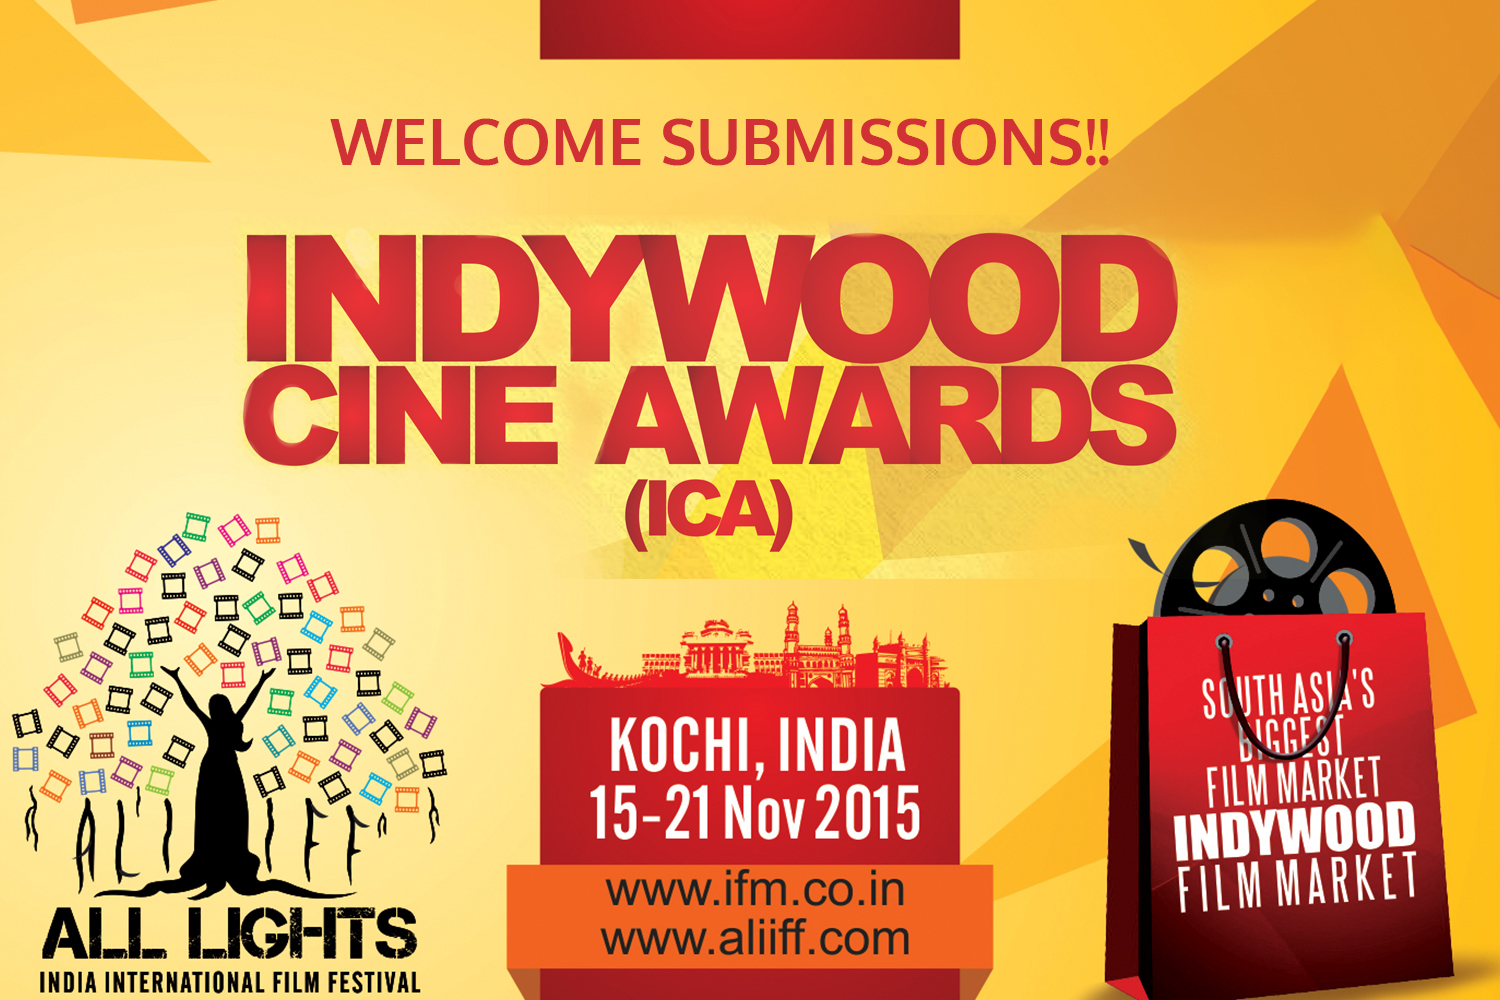 Exclusive Indywood Cine Awards to be given away at ALIIFF